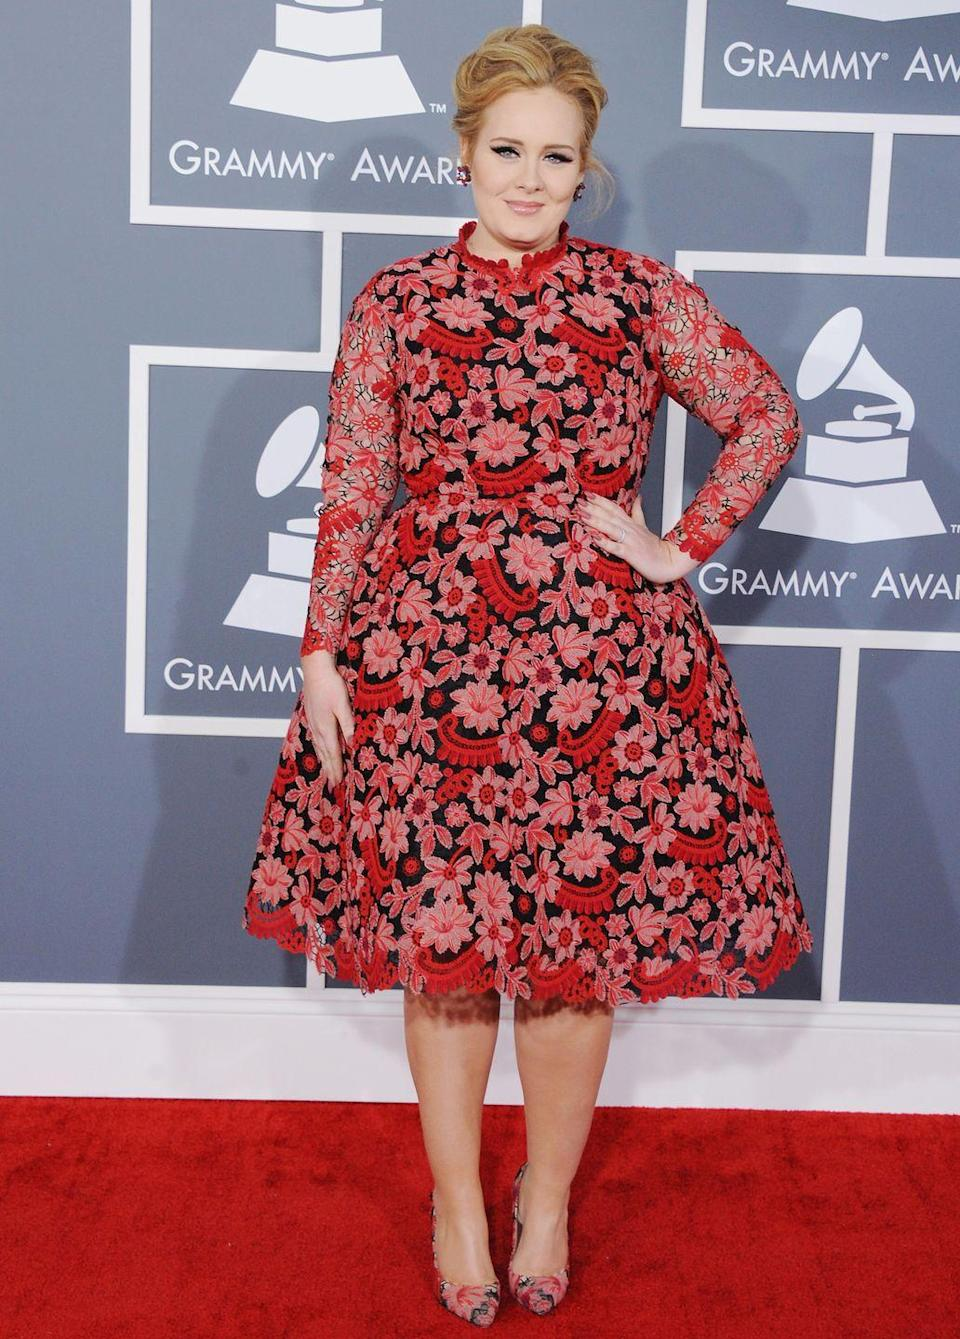 <p>For the 2013 Grammy Awards, Adele opted for this ladylike Valentino design, featuring pink and red floral lace. </p>